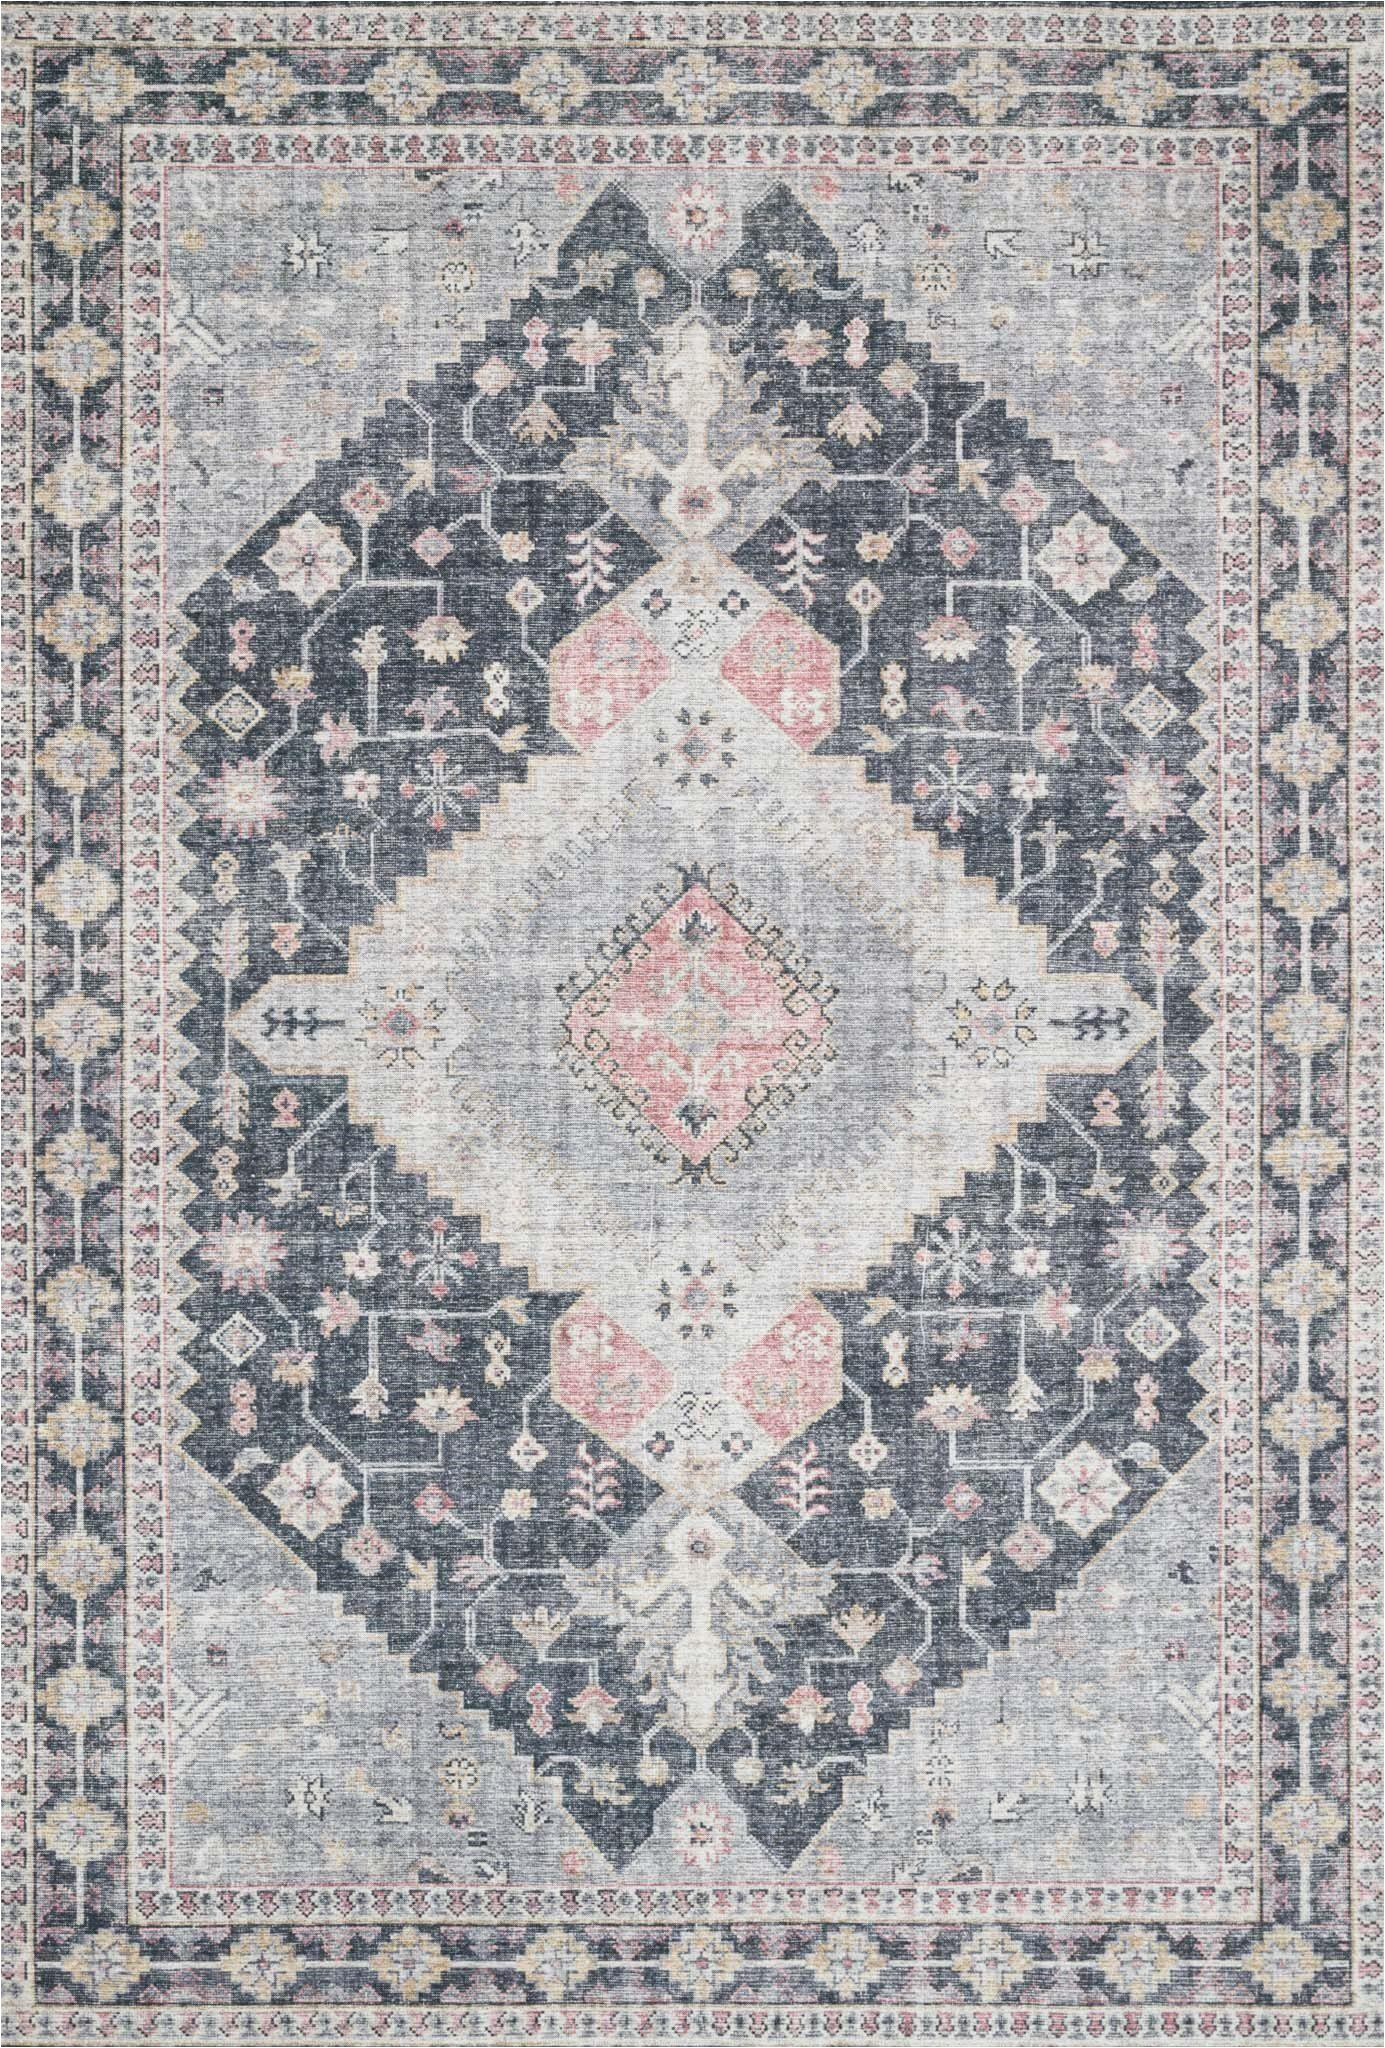 Blush and Gold area Rug Tribal Style area Rugs